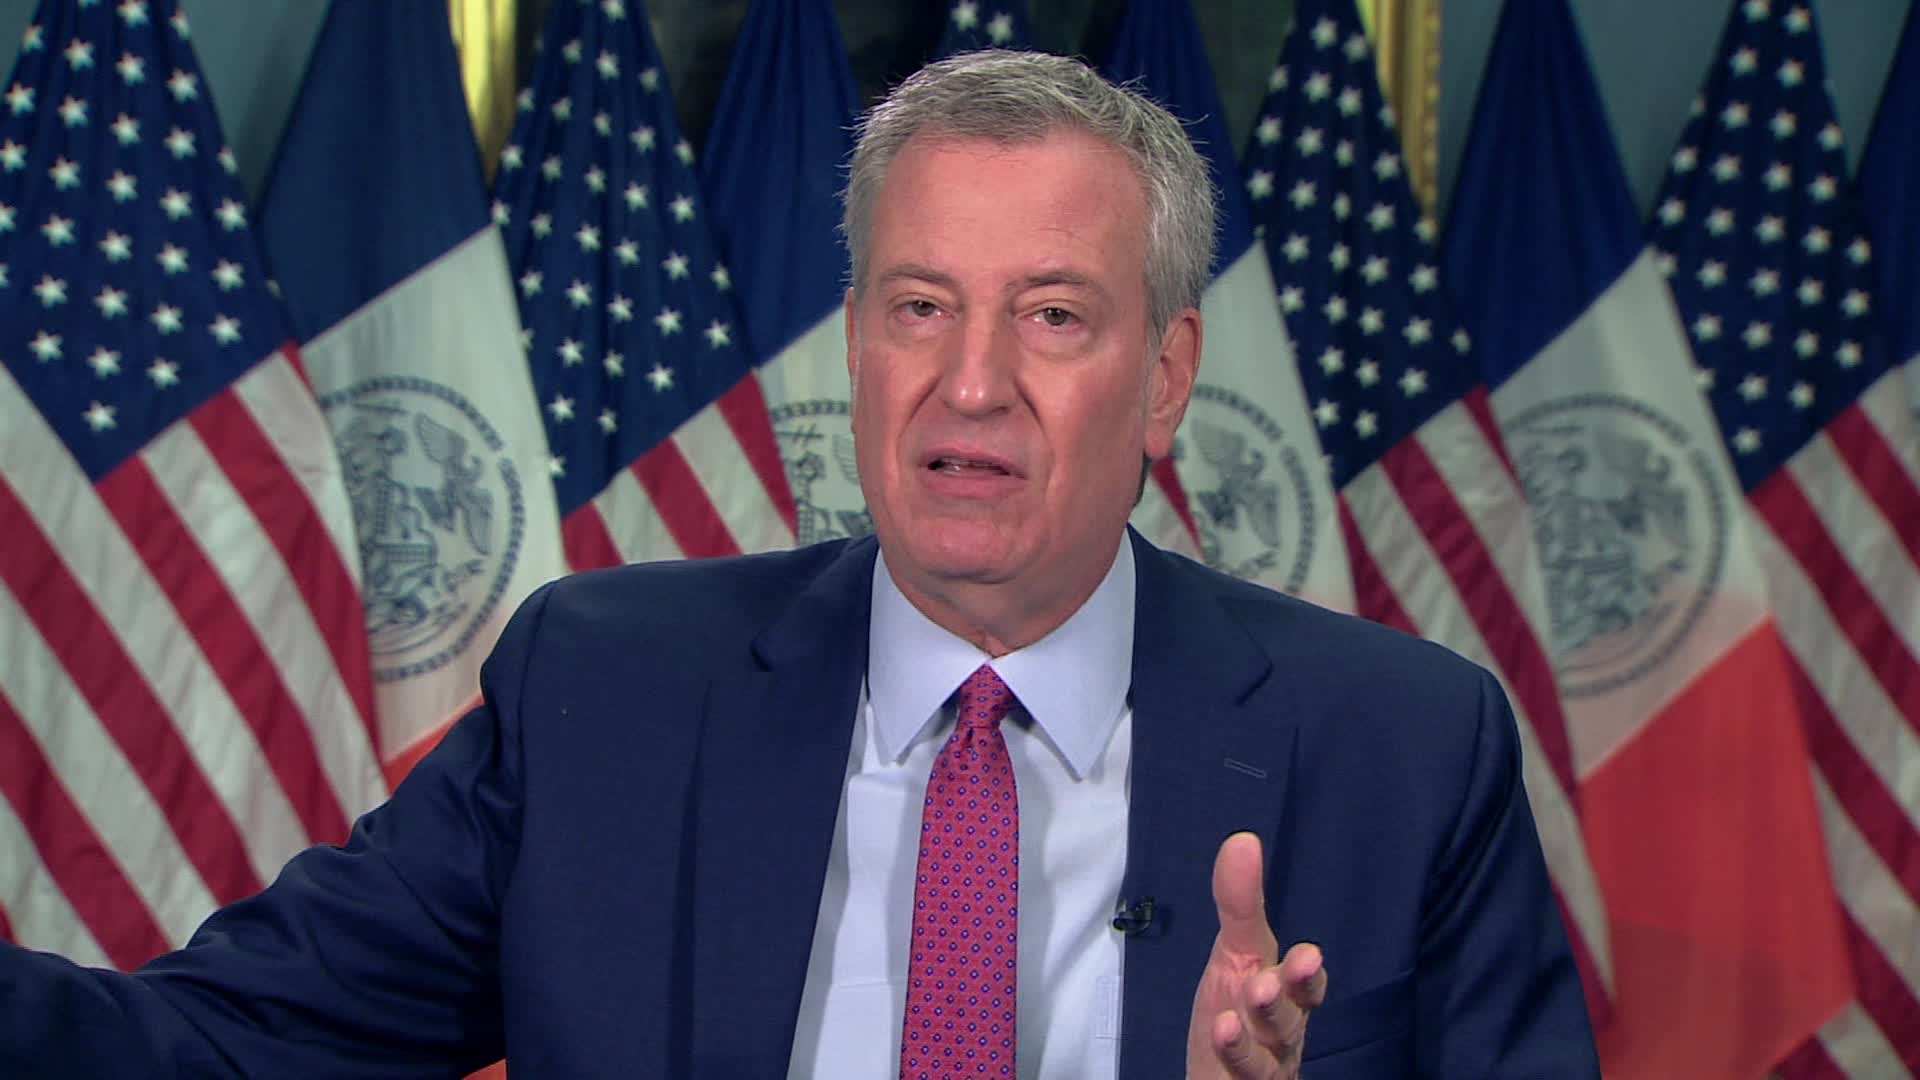 New York City Mayor Bill de Blasio speaks during an interview on November 30.